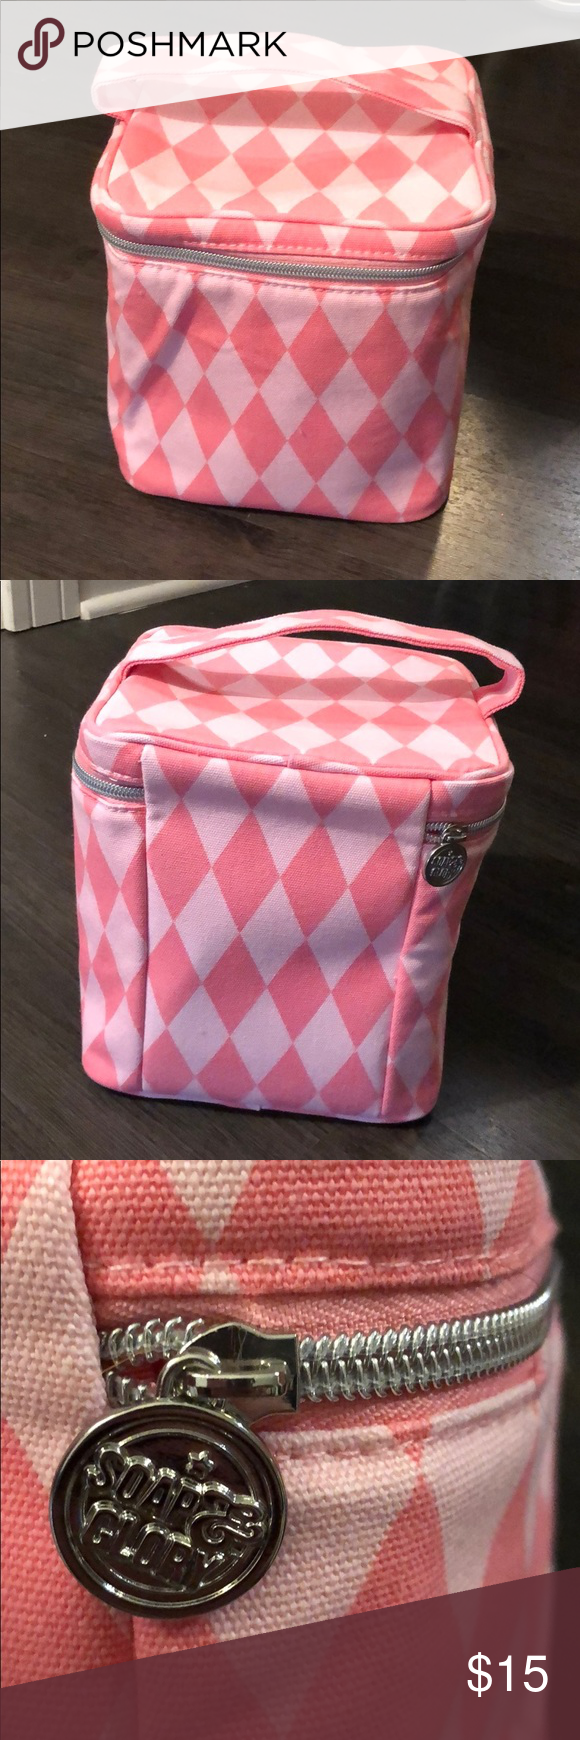 Soap and Glory train case for cosmetics Soap and glory